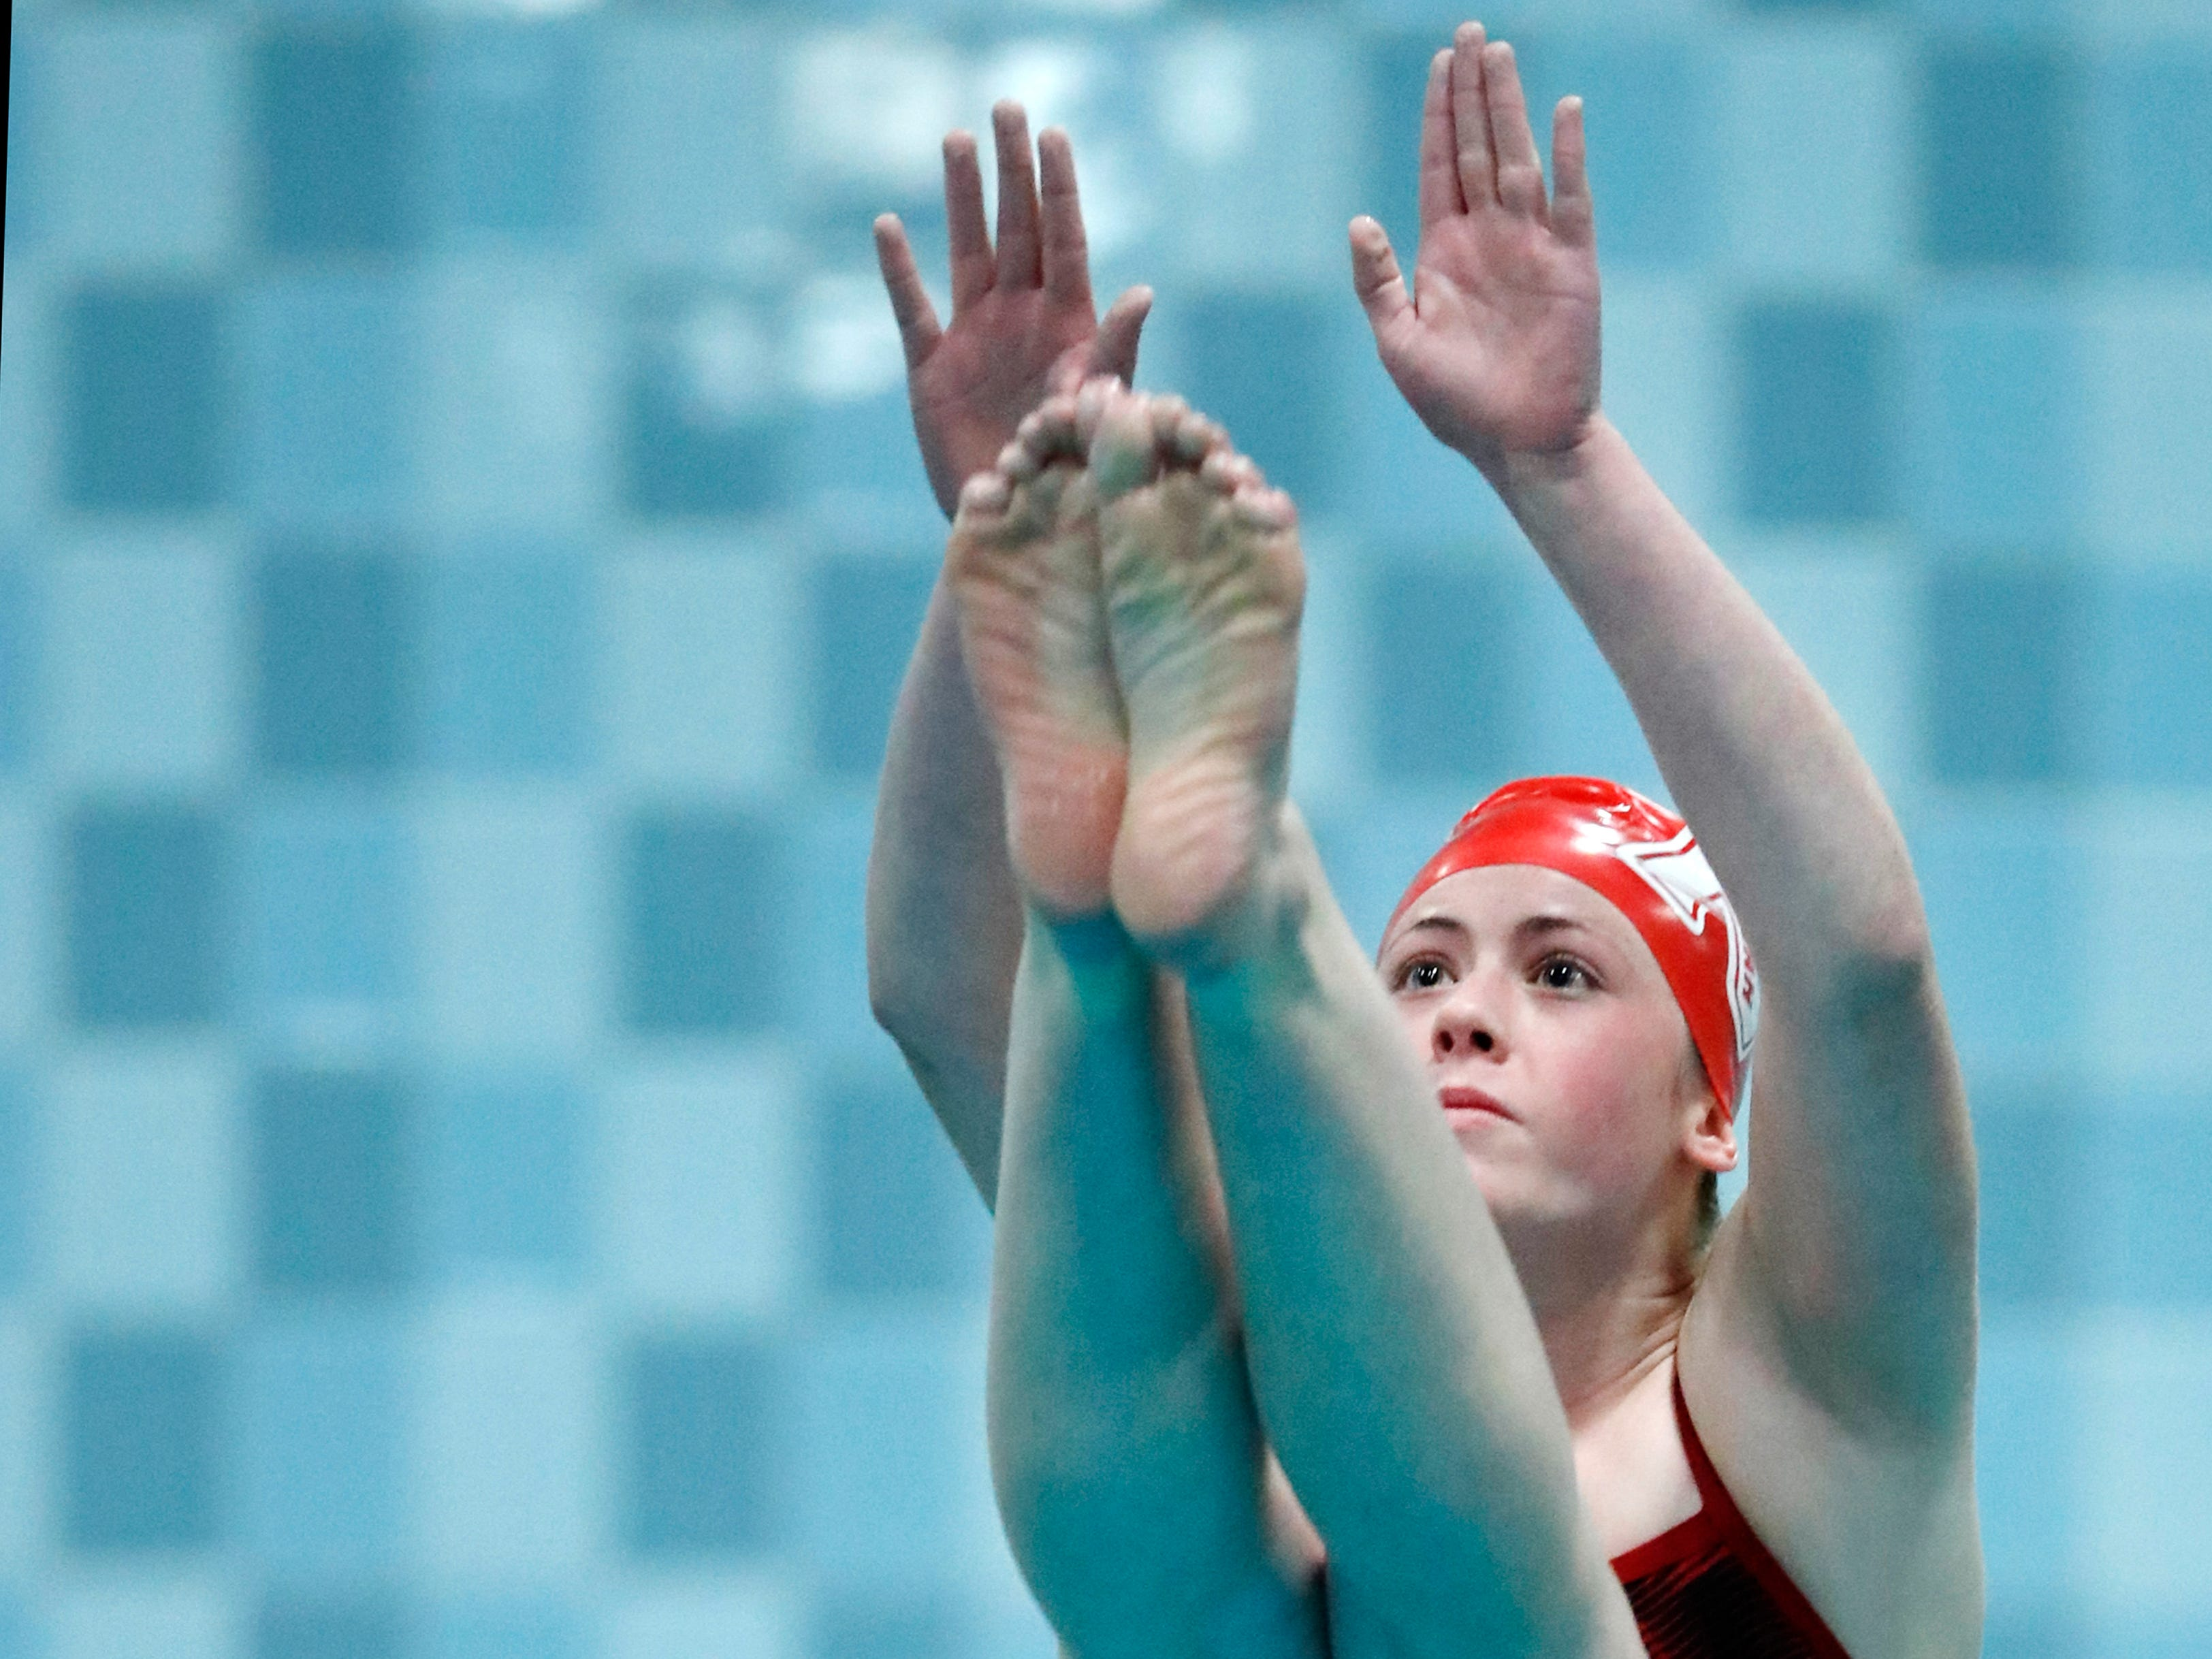 Neenah's Abbigale Priestley during the WIAA Division 1 State Swimming and Diving meet Saturday, Nov. 10, 2018, at the UW Natatorium in Madison, Wis.